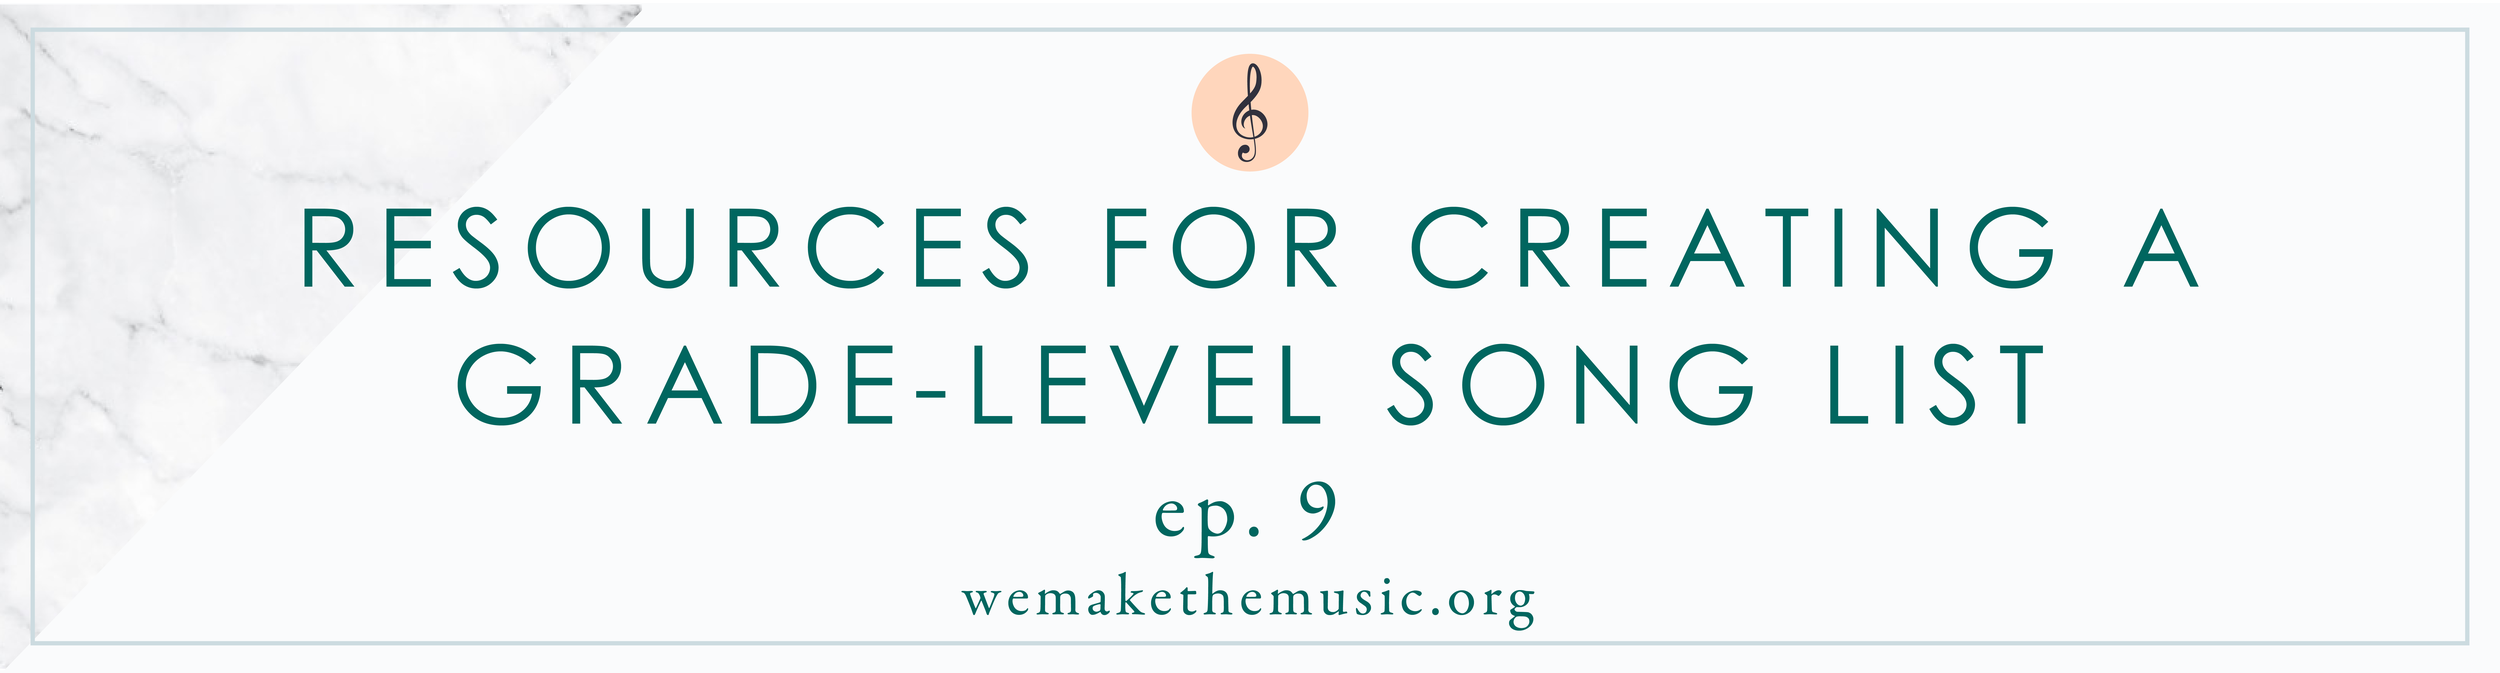 Resources for Creating a Grade-Level Song List - Victoria Boler Podcast